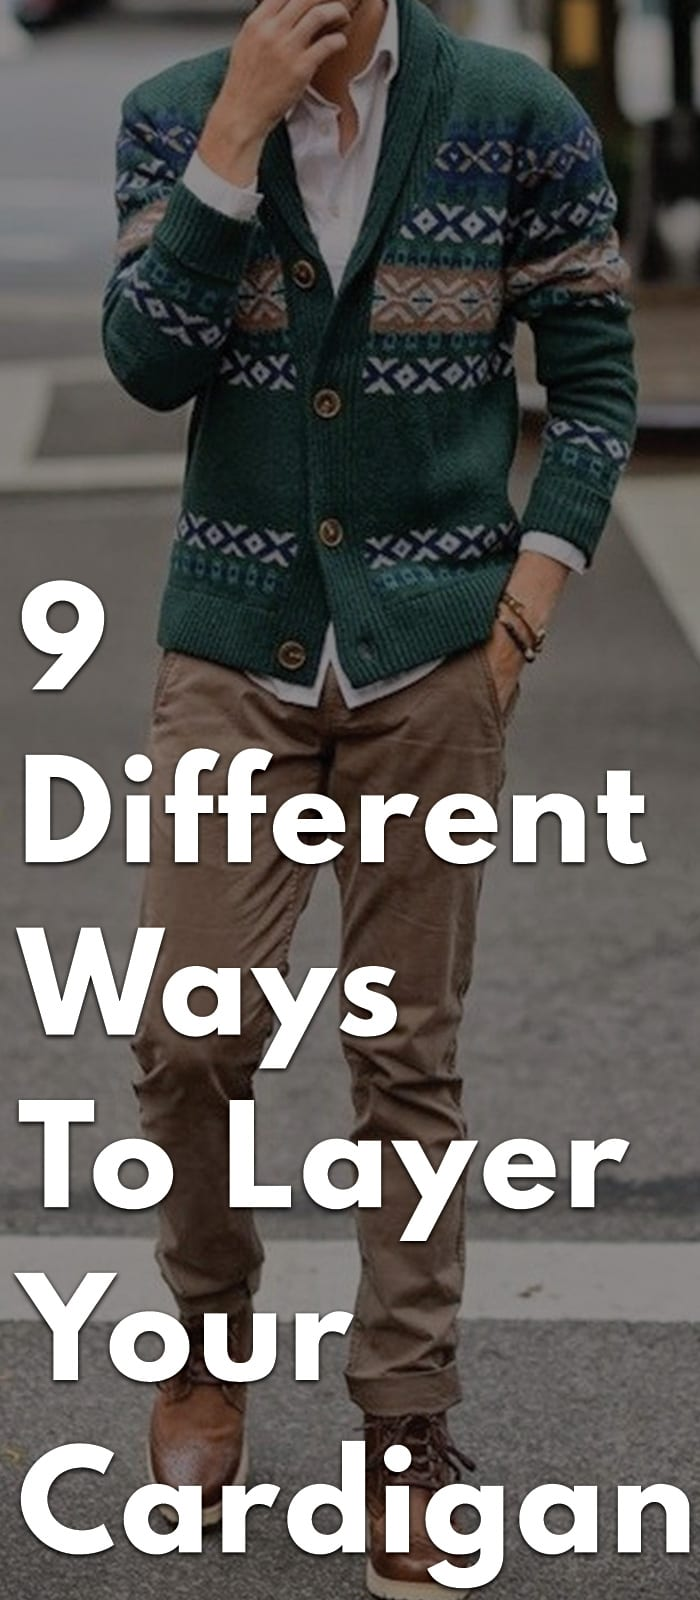 9-Different-Ways-To-Layer-Your-Cardigan